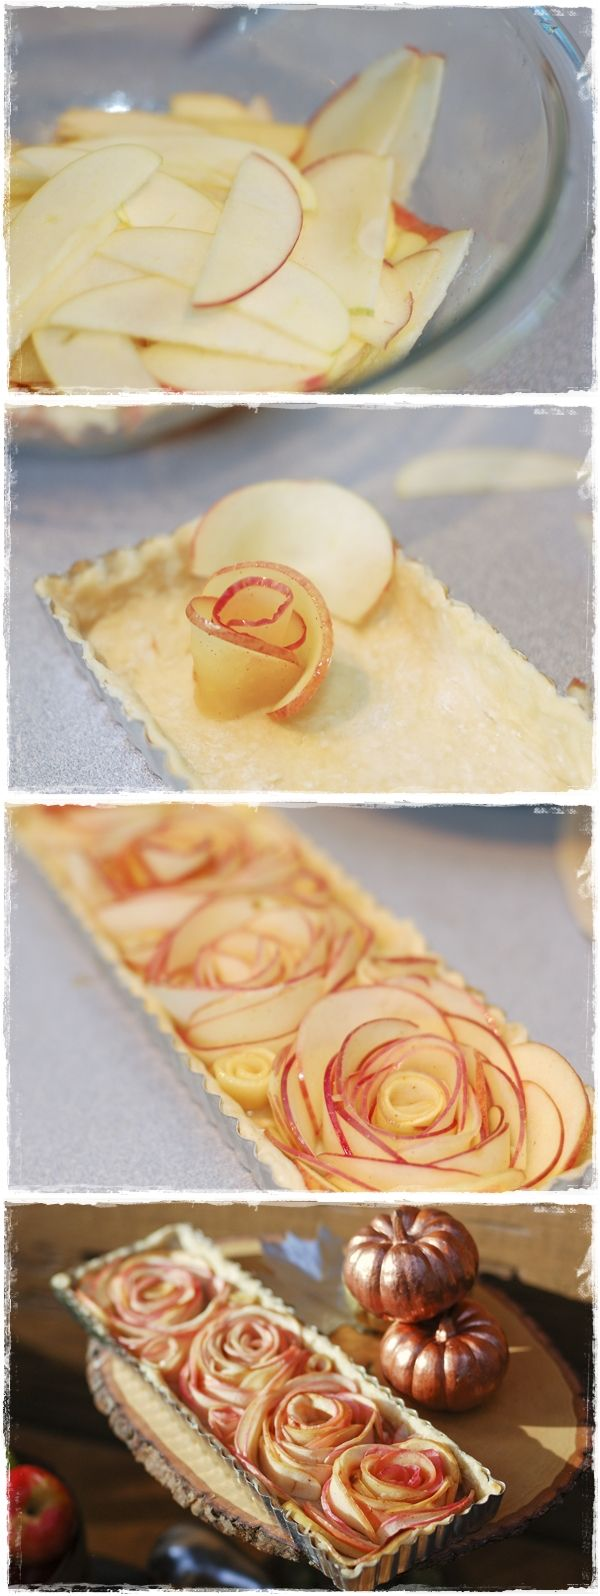 Rose Apple Tart! This is cute and easy to make. #recipe #apple #tart